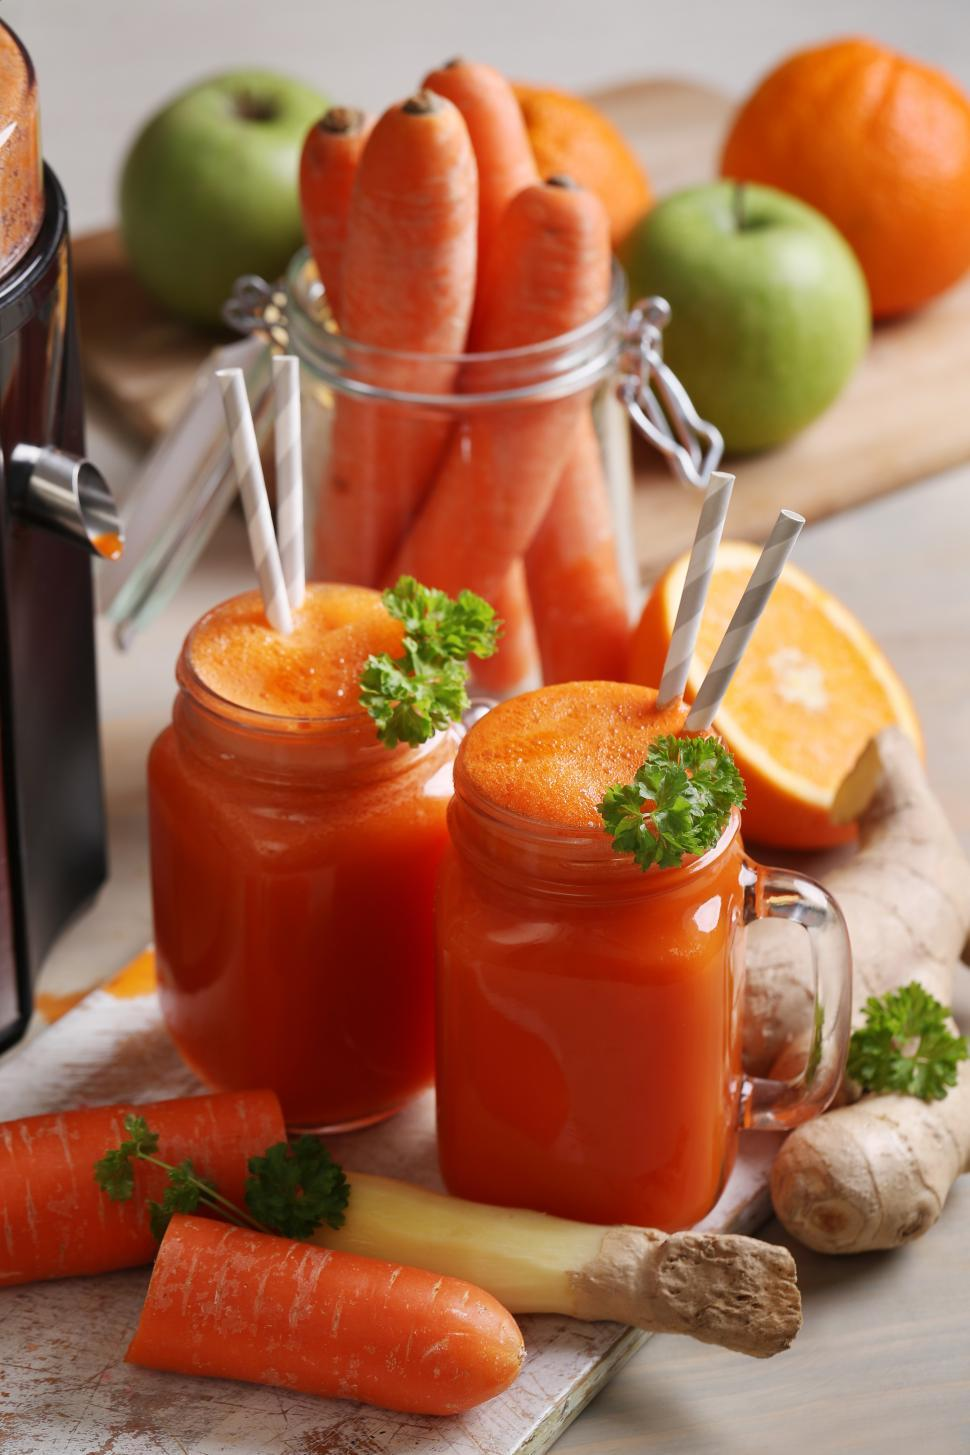 Download Free Stock Photo of Healthy carrot juice